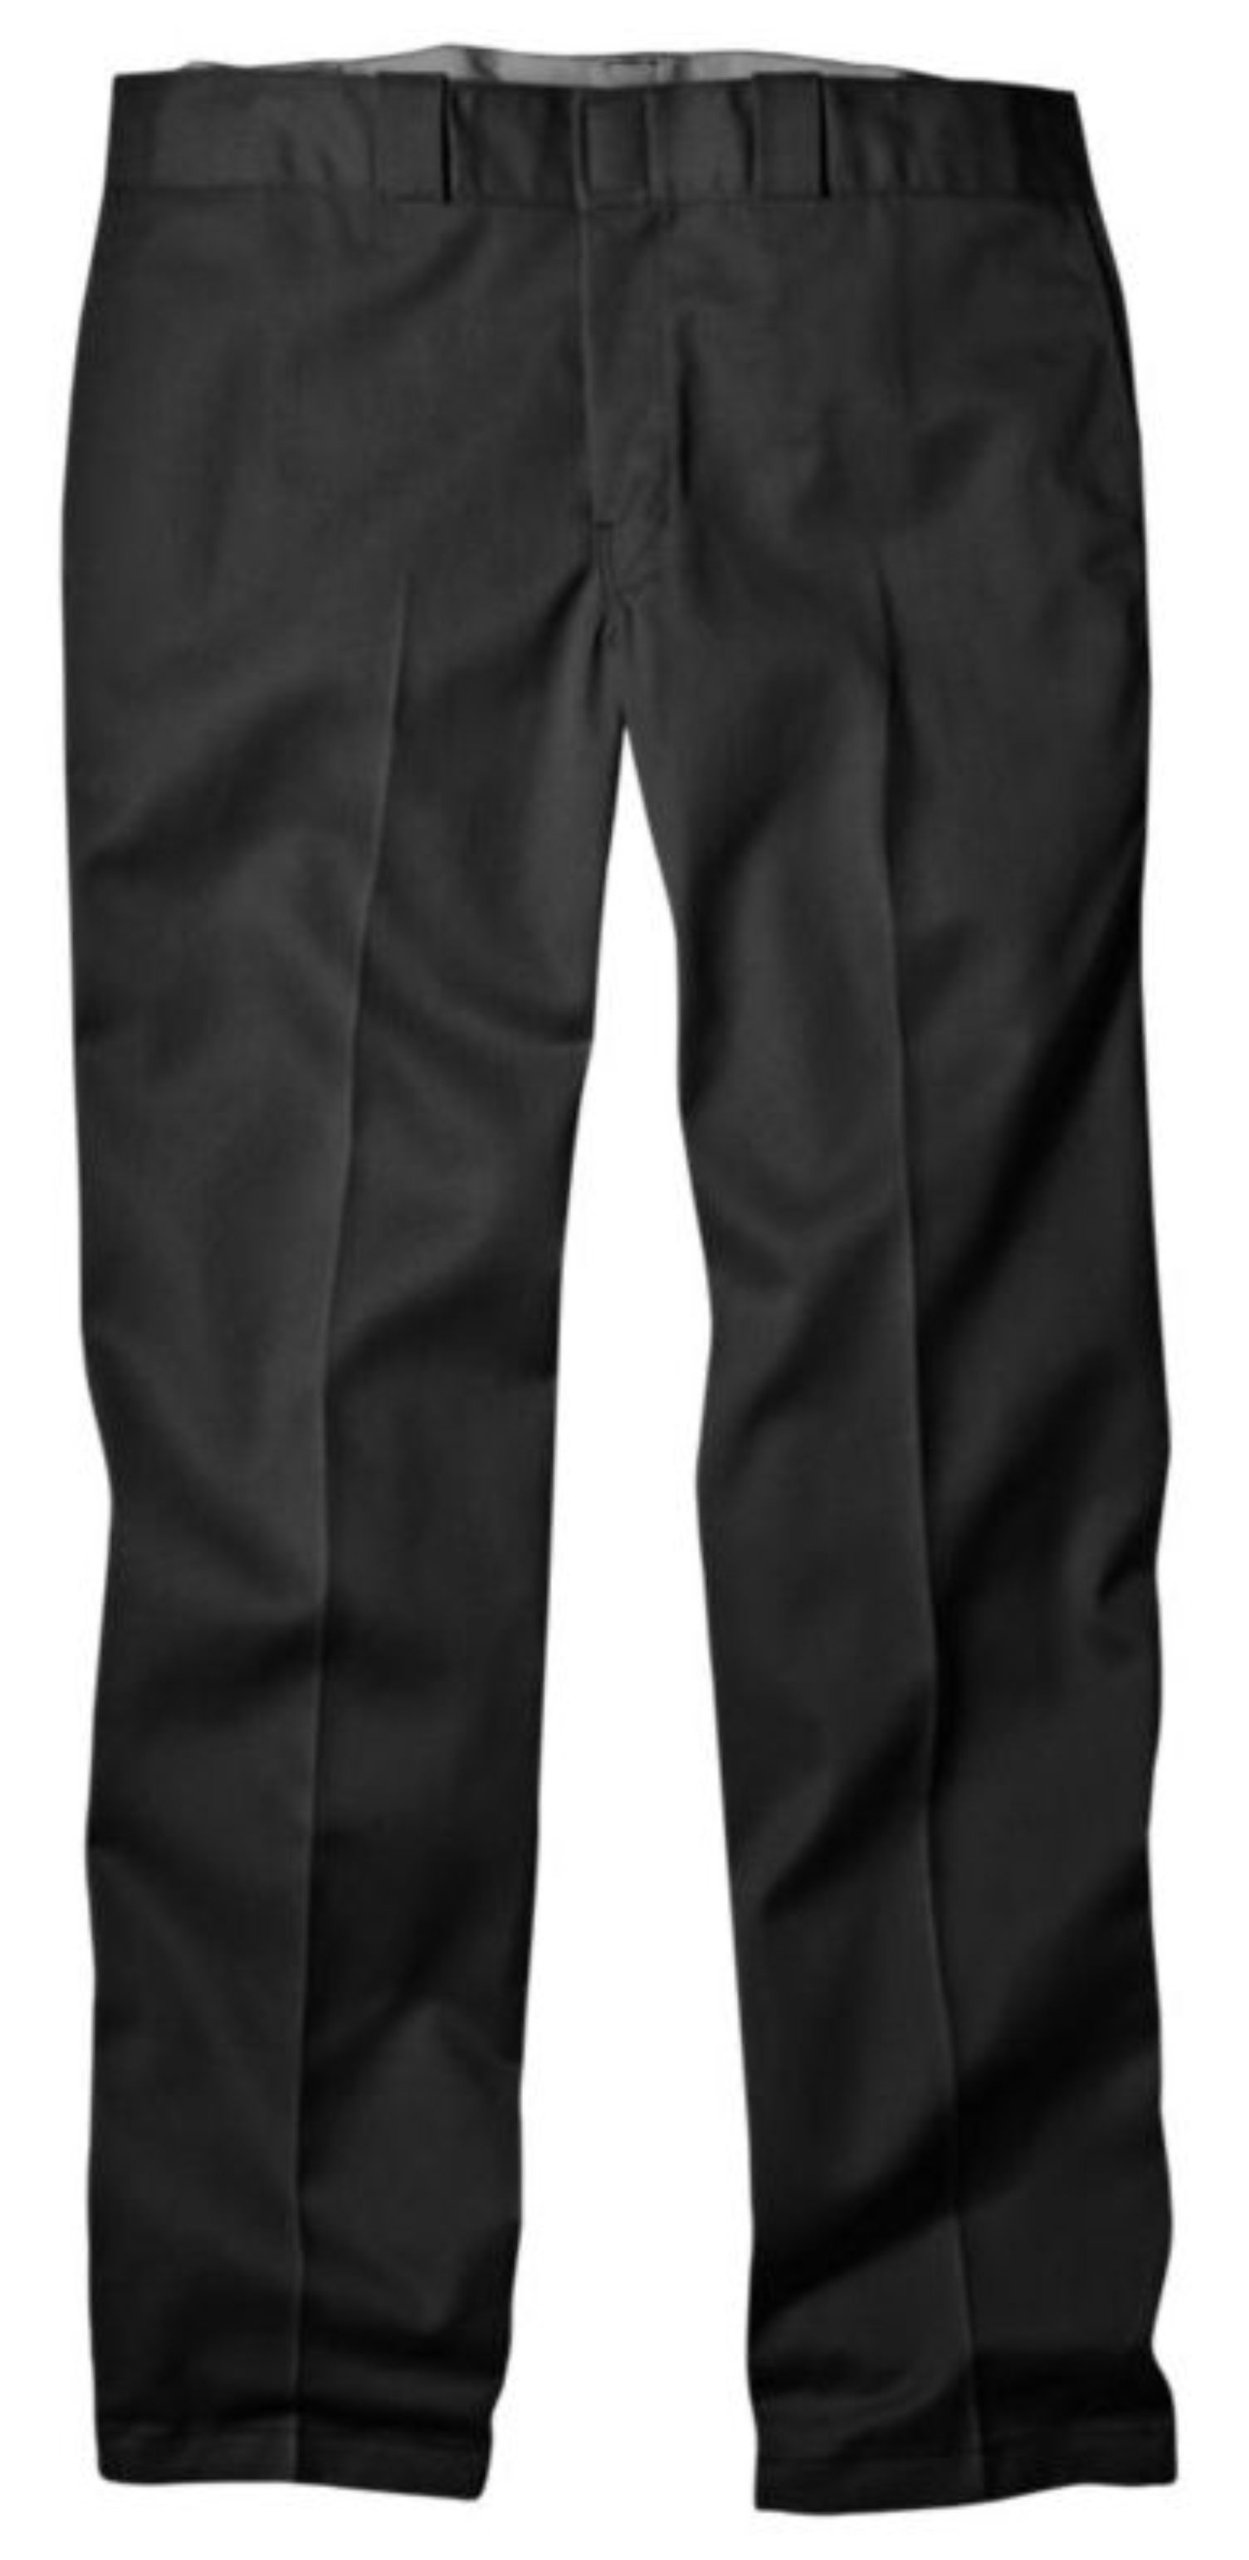 Dickies Men's Original 874 Work Pant, Black, 36W x 32L by Dickies